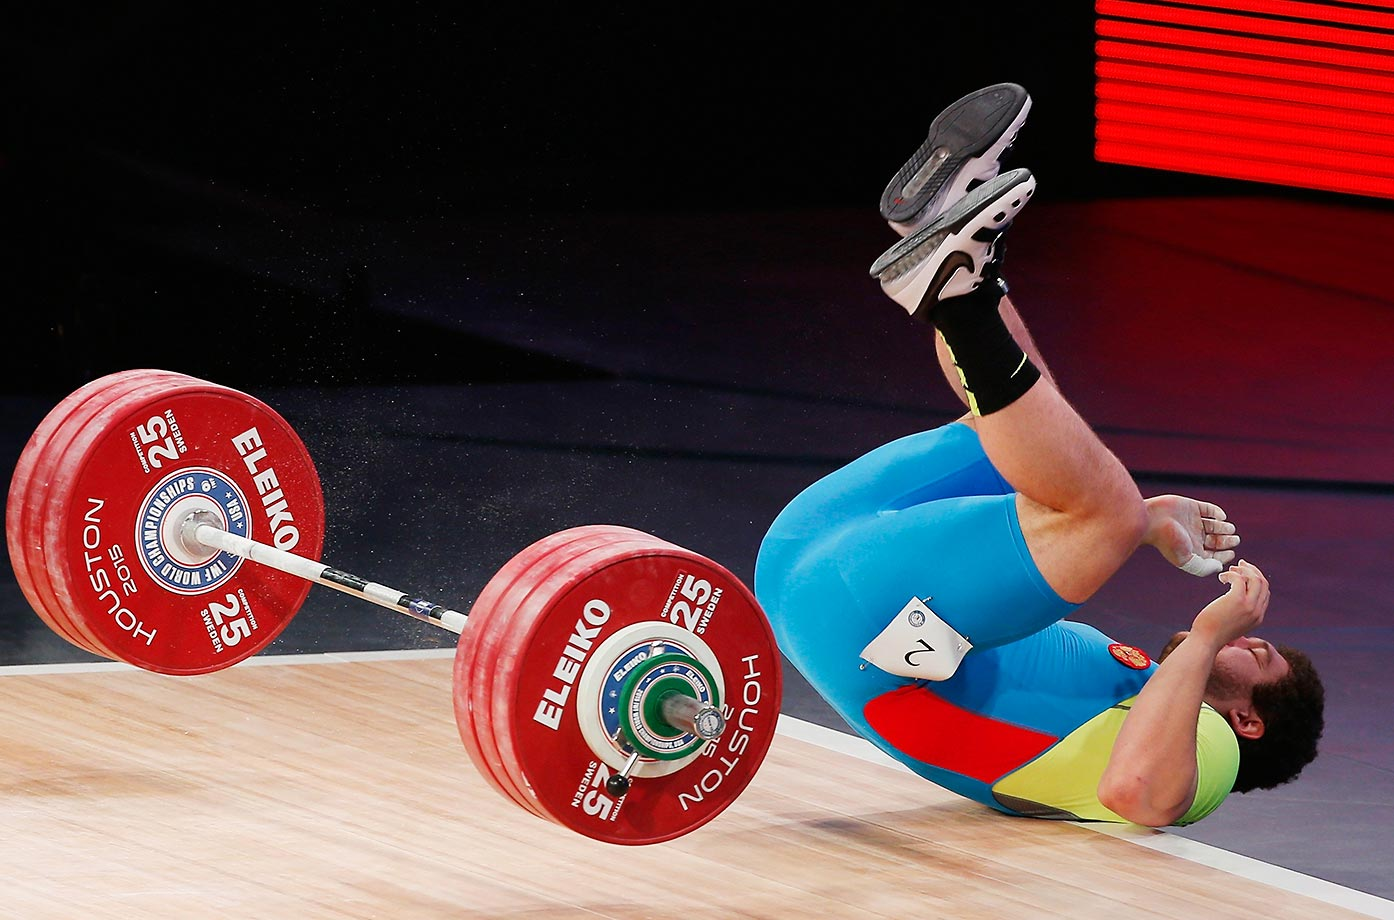 Timur Naniev of Russia reacts to a lift in the 105kg weight class during the world championships in Texas.